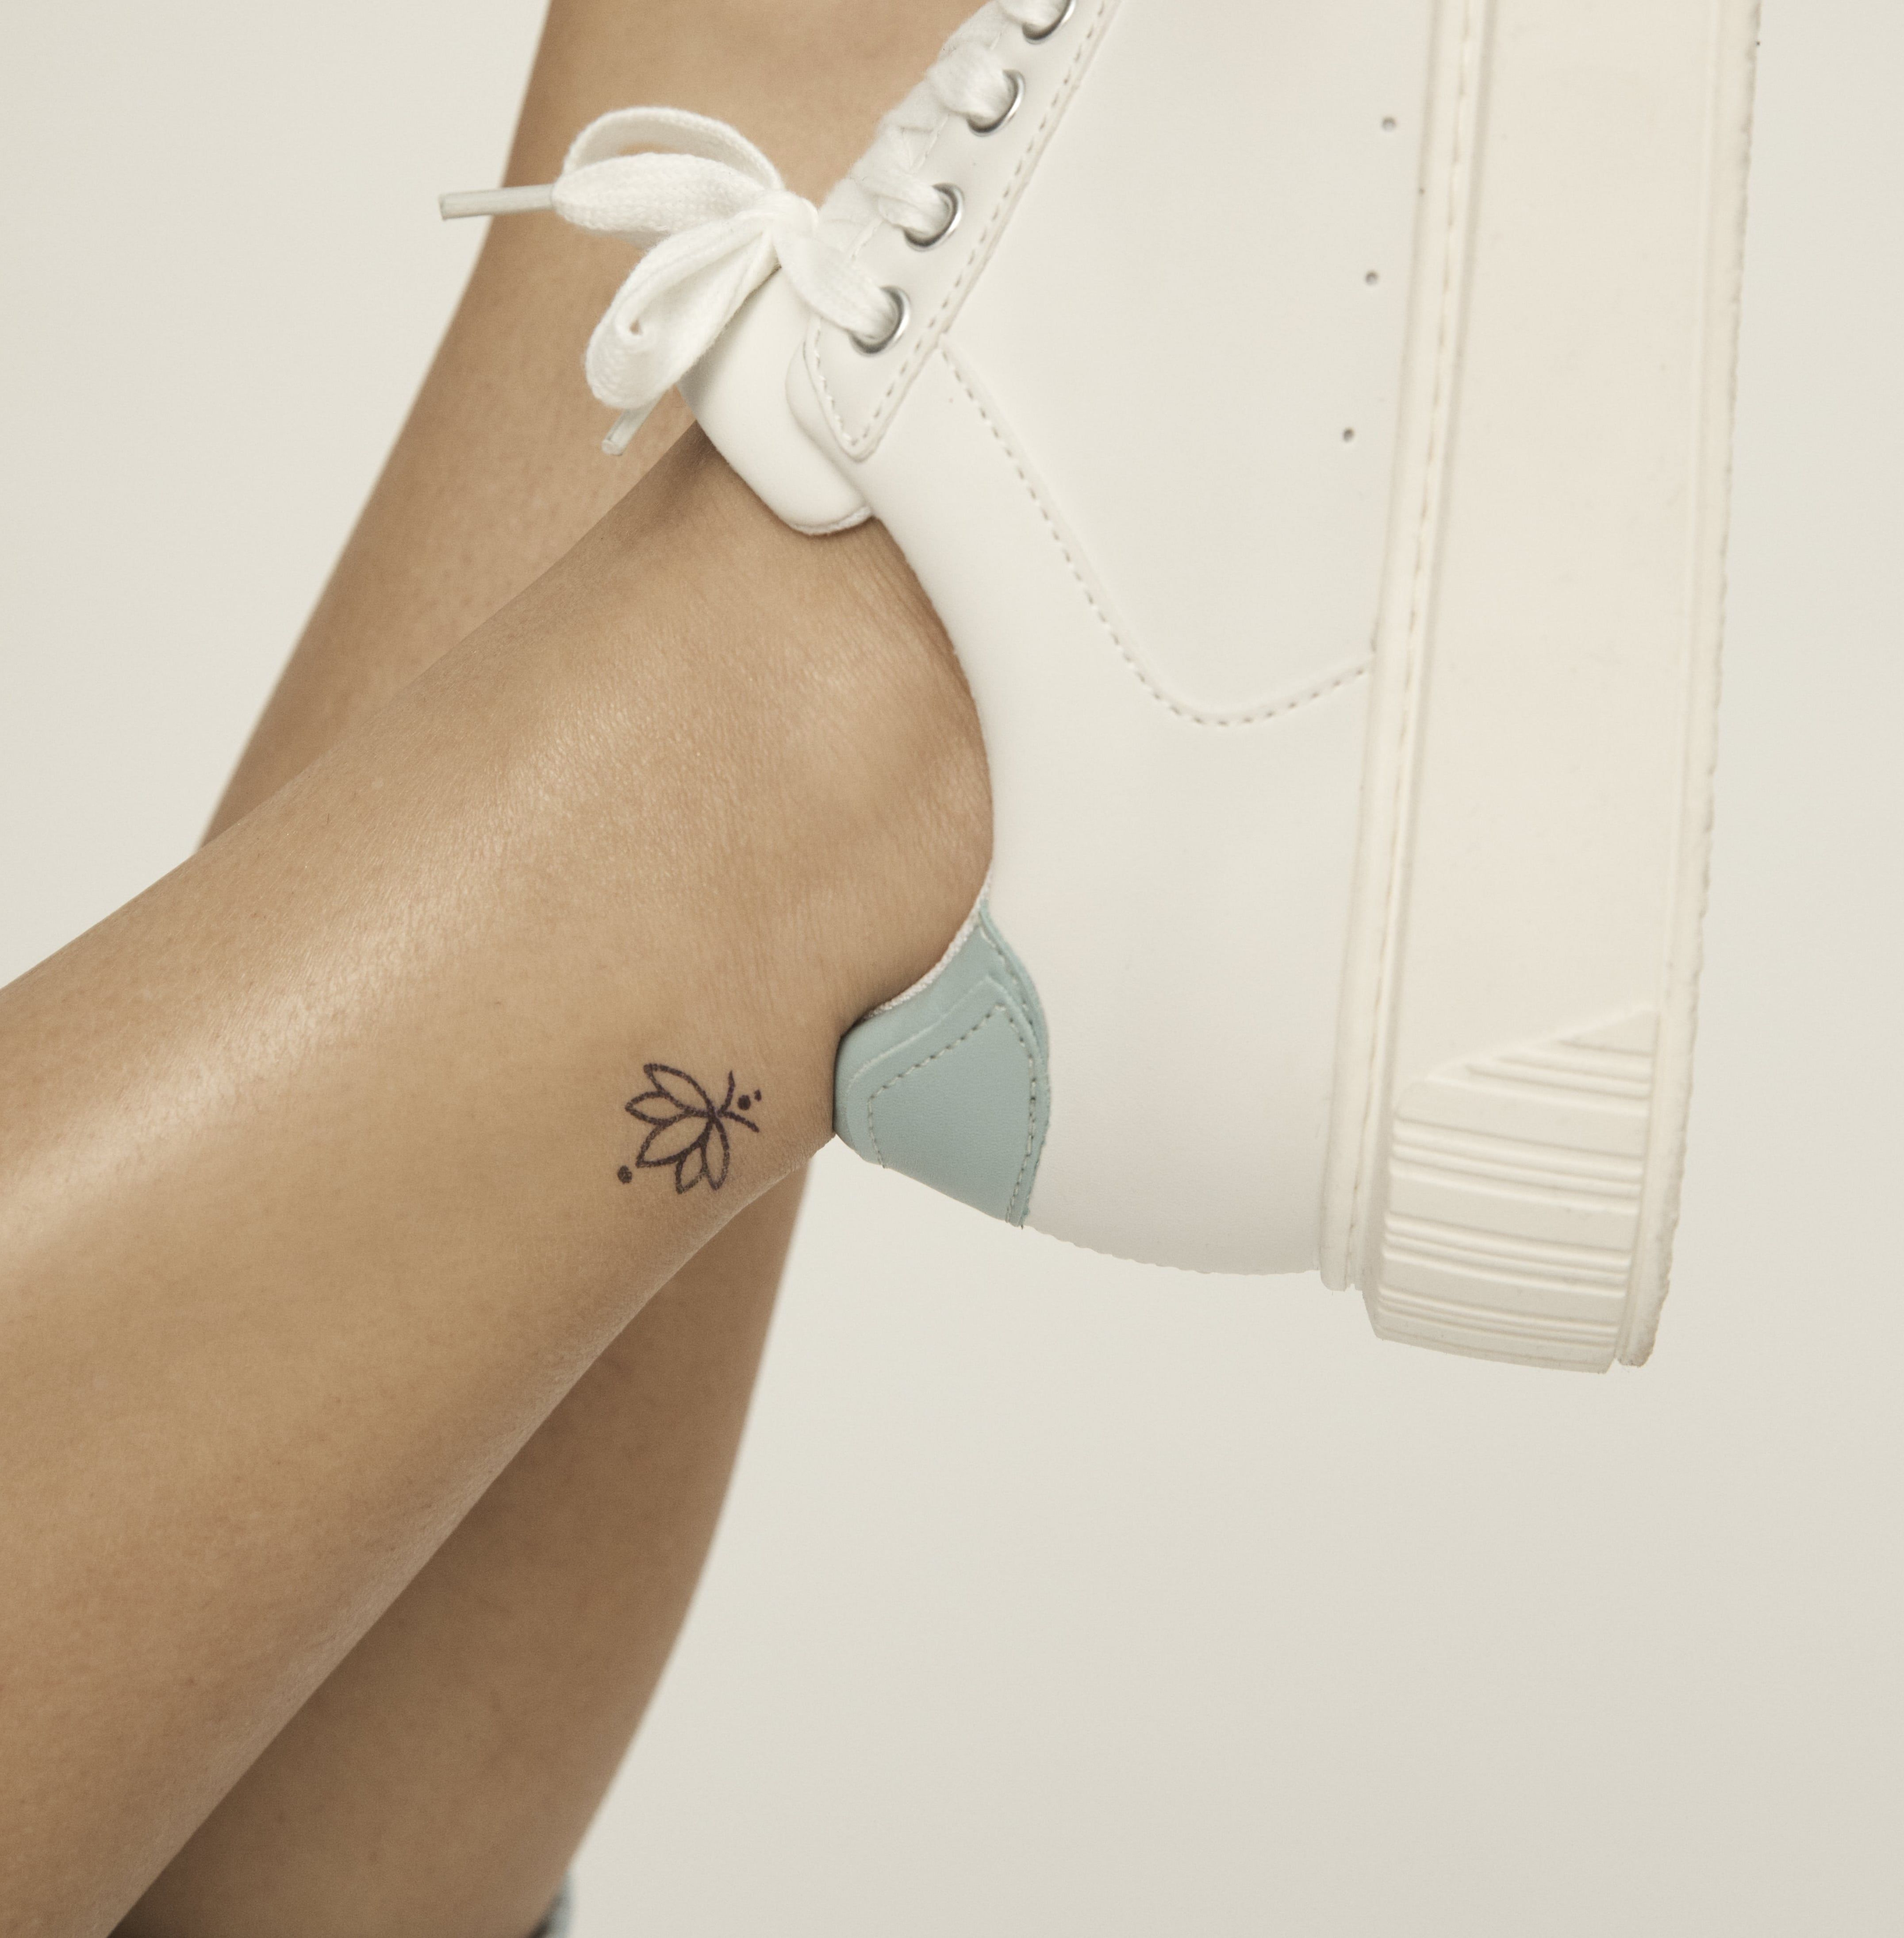 simple ankle temporary tattoo idea for women